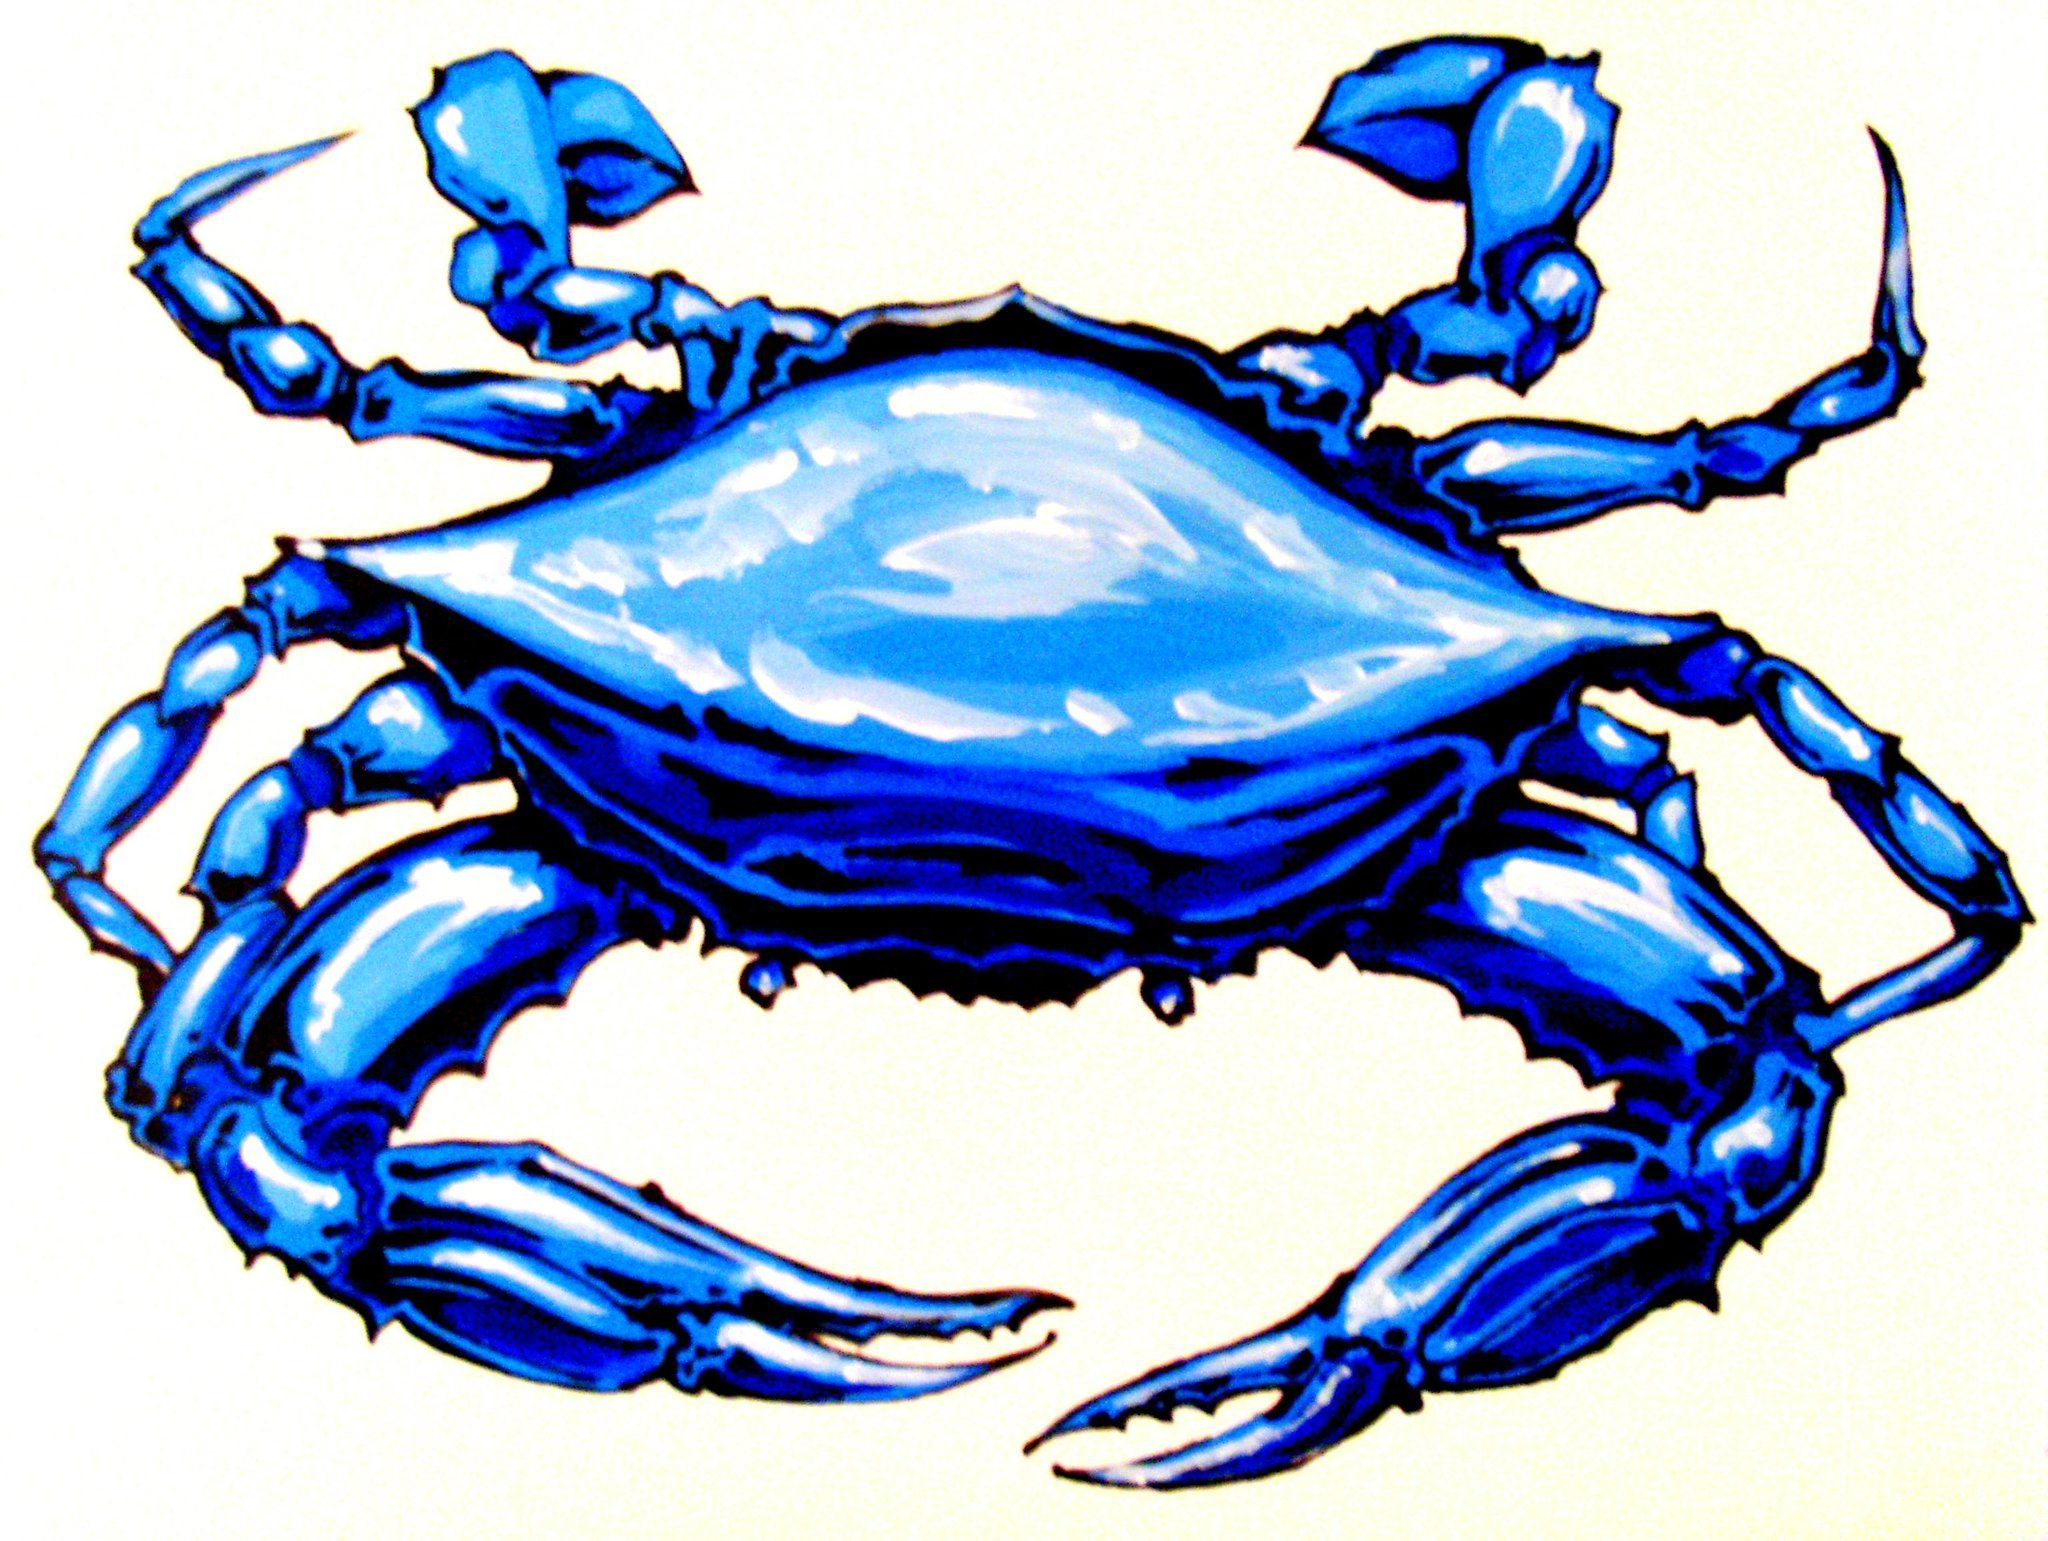 blue crab clip art free real clipart and vector graphics u2022 rh realclipart today blue claw crab clipart blue crab clipart free